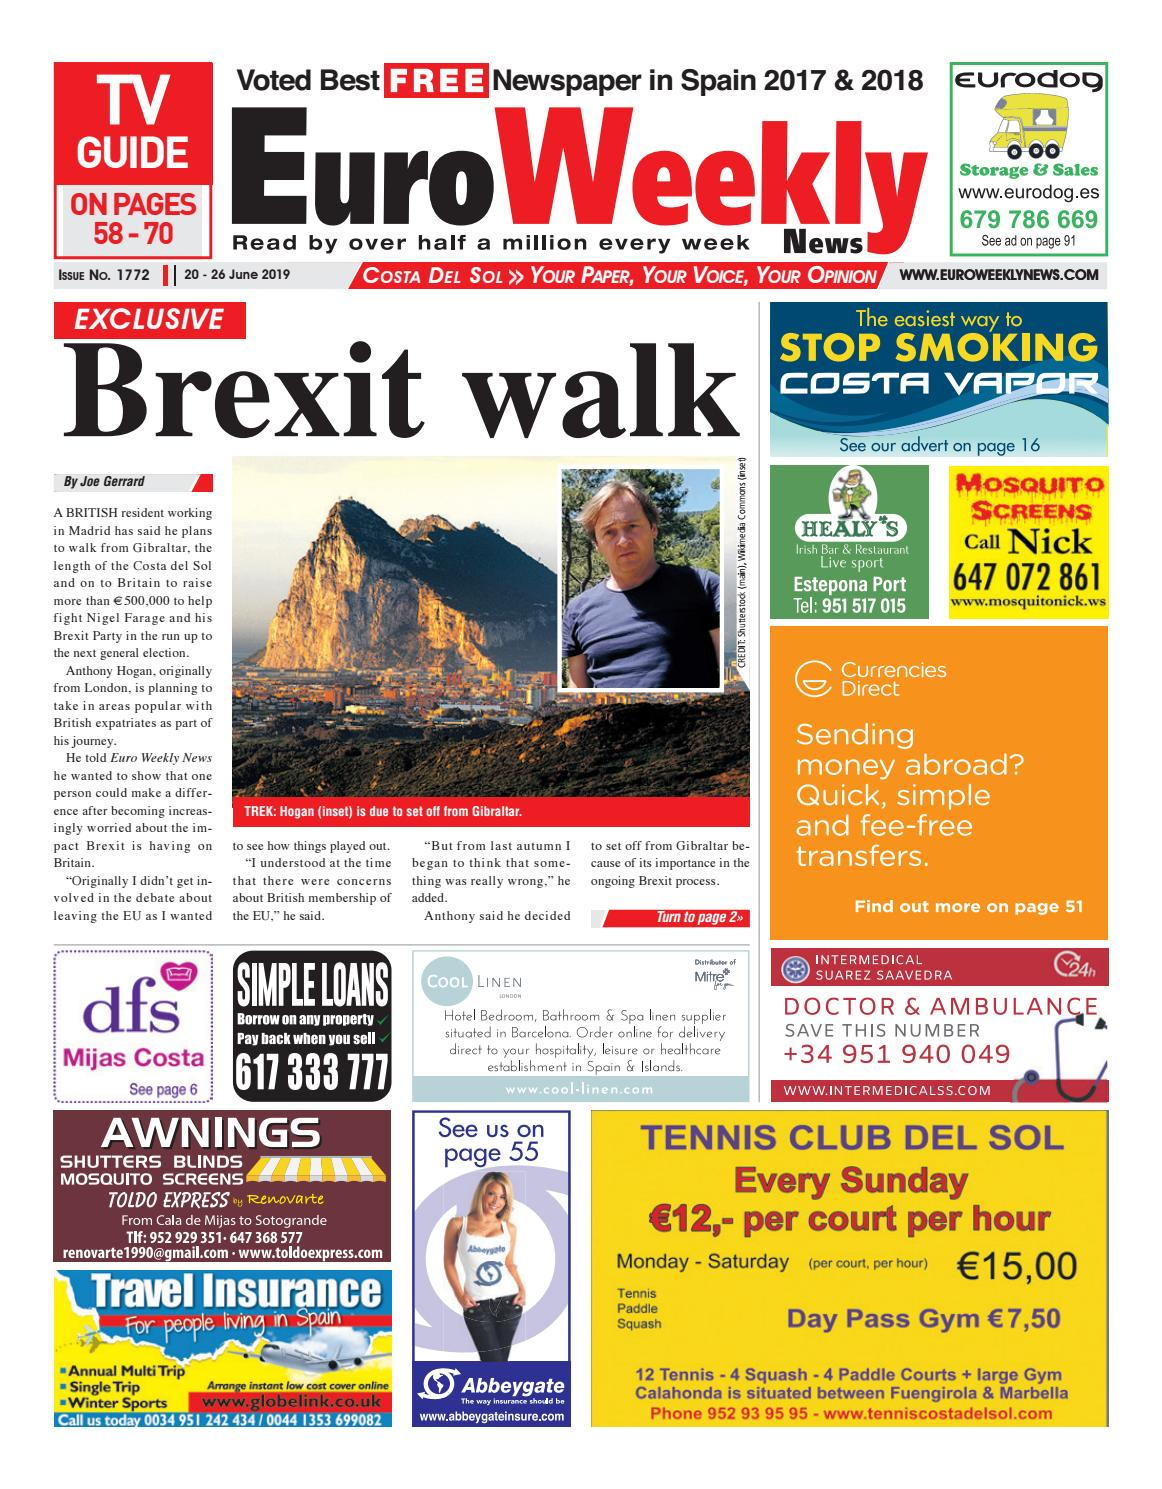 Euro Weekly News - Costa del Sol 20 - 26 June 2019 Issue